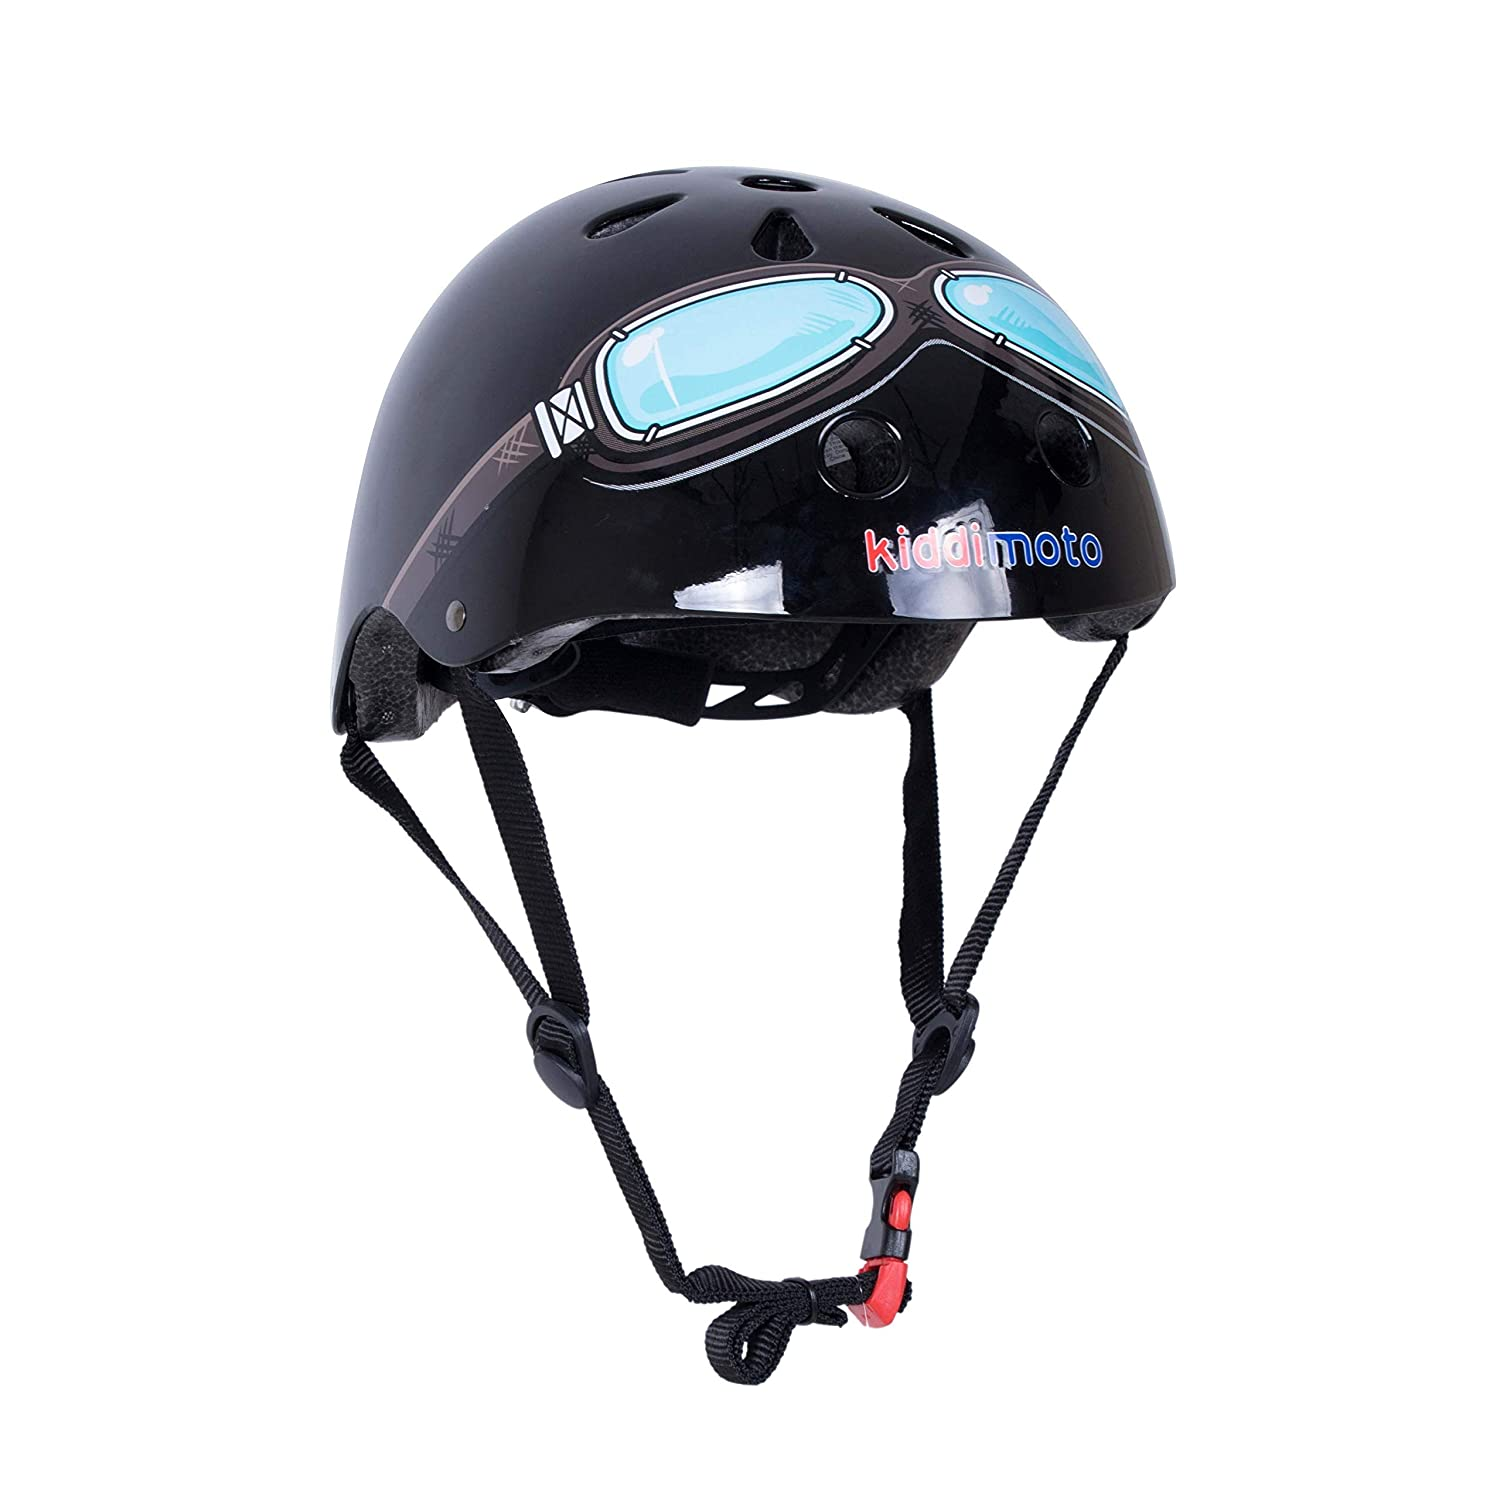 KIDDIMOTO Casco Bicicleta o Patinete Glossy Black Small ...